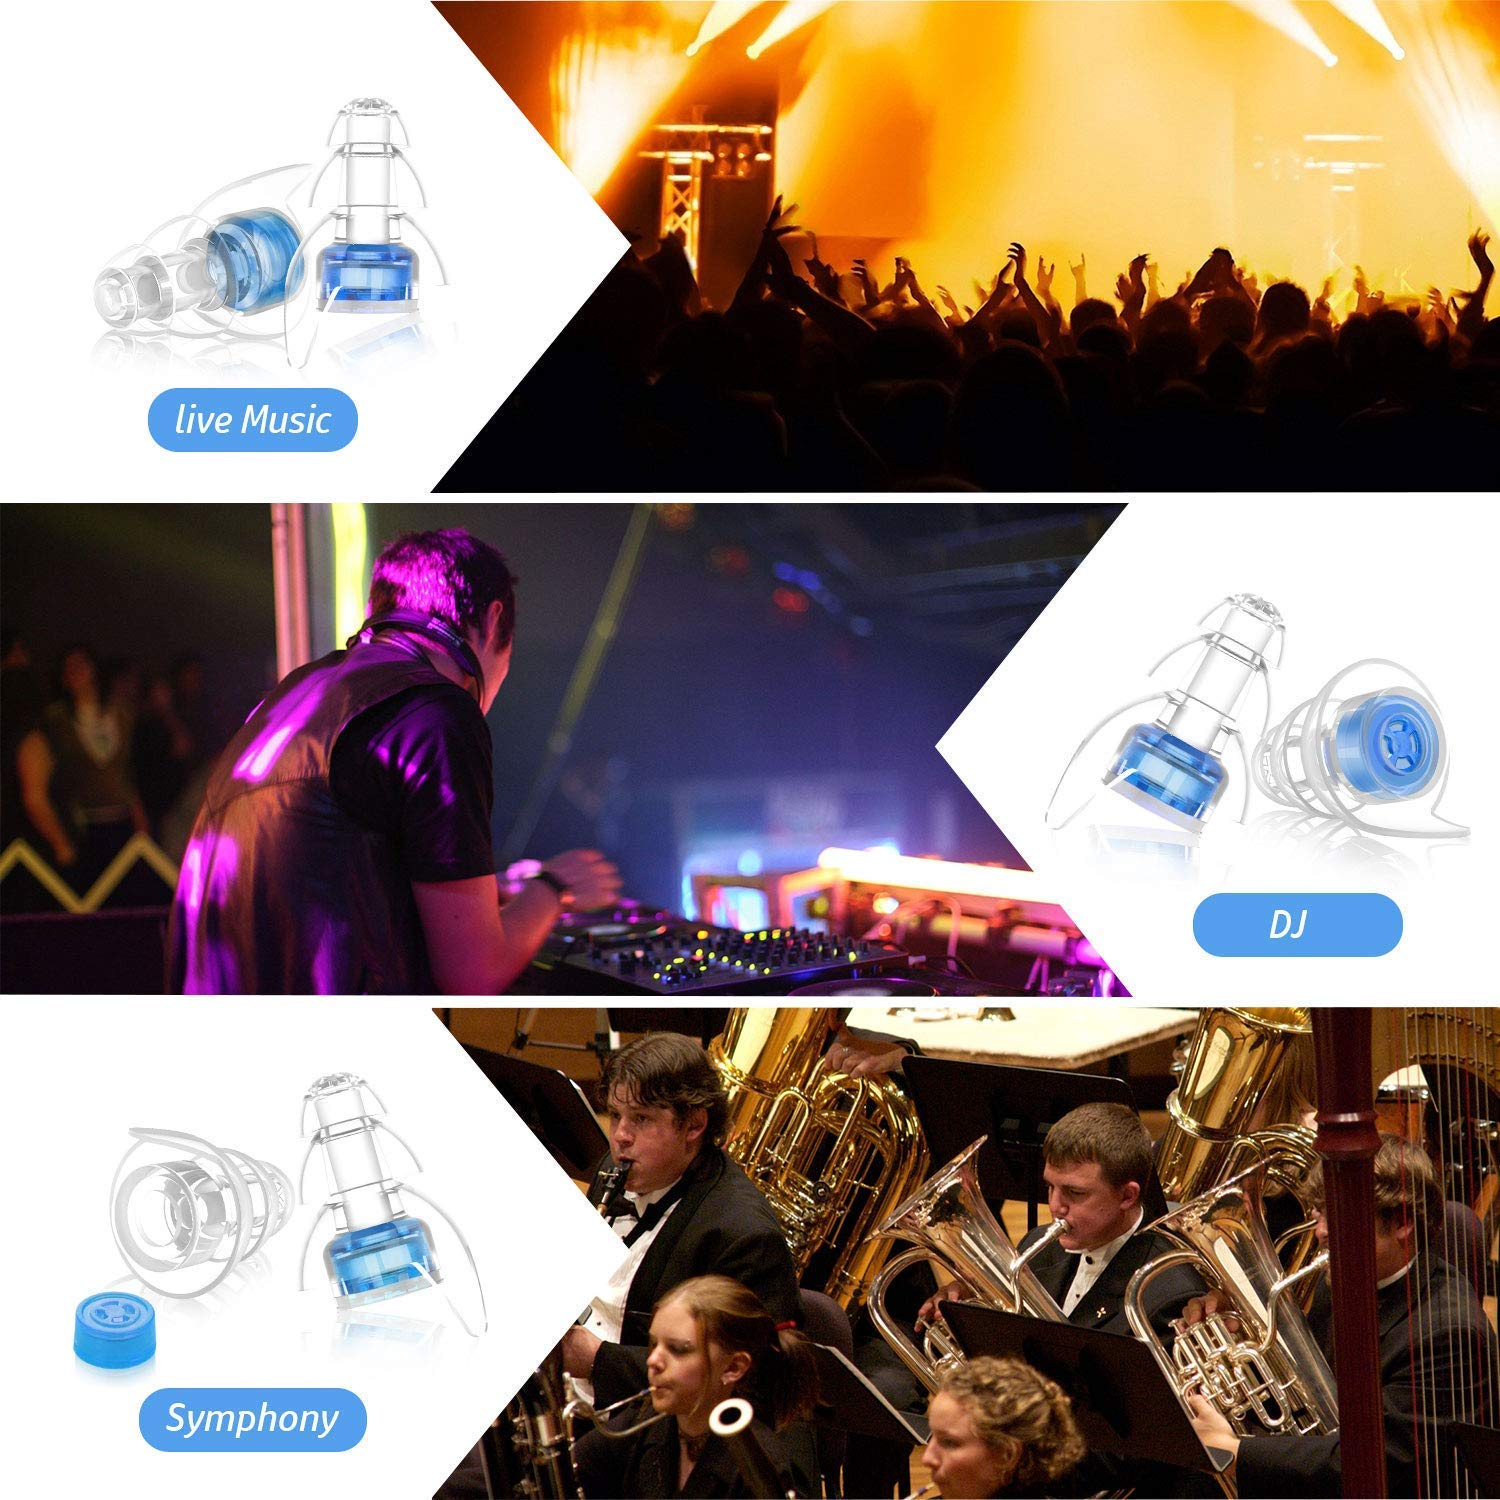 High Fidelity Soft Ear Plugs Hearing Protection Ear Plugs Silicone Noise Cancelling Ear Plugs with Aluminium Box for Live Music Concerts Nightclub Musicians DJ Drumming